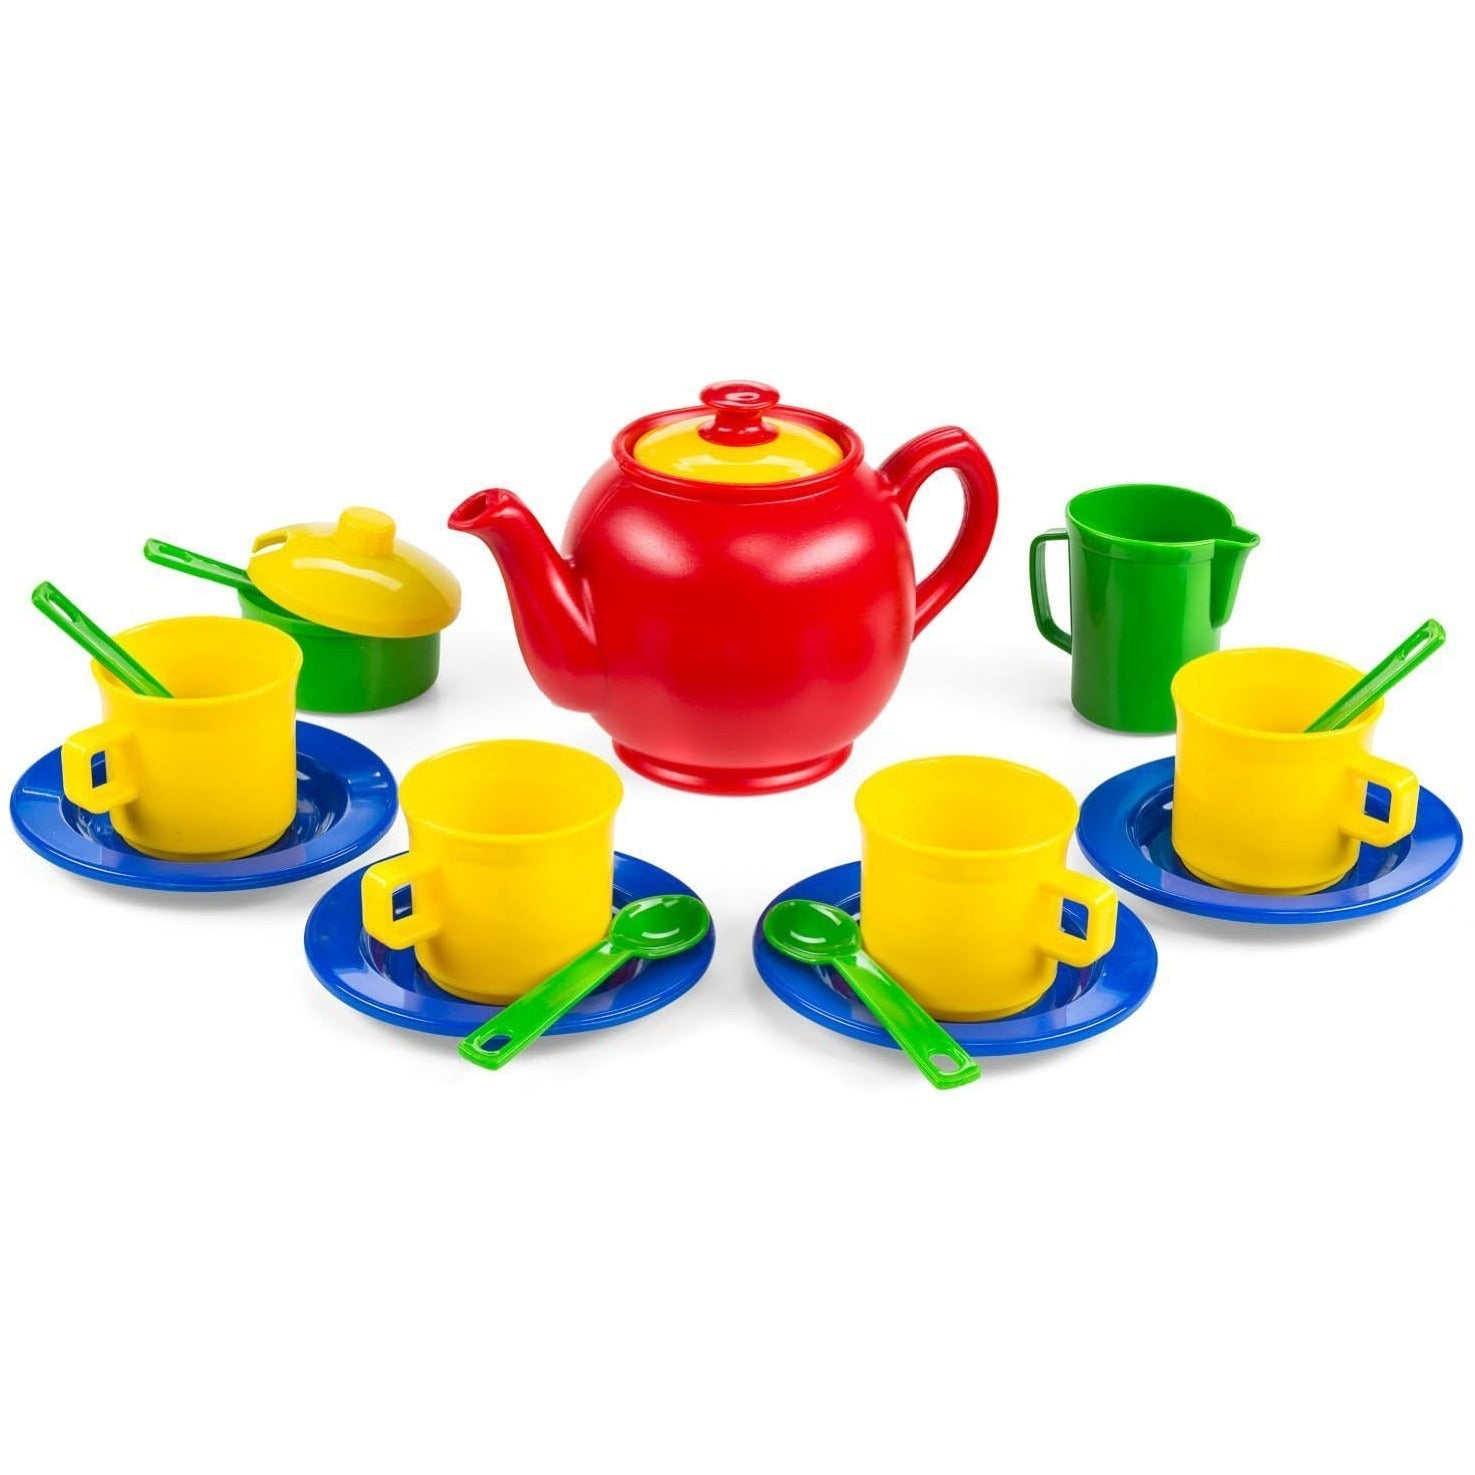 Play Tea Set - Kidzlane